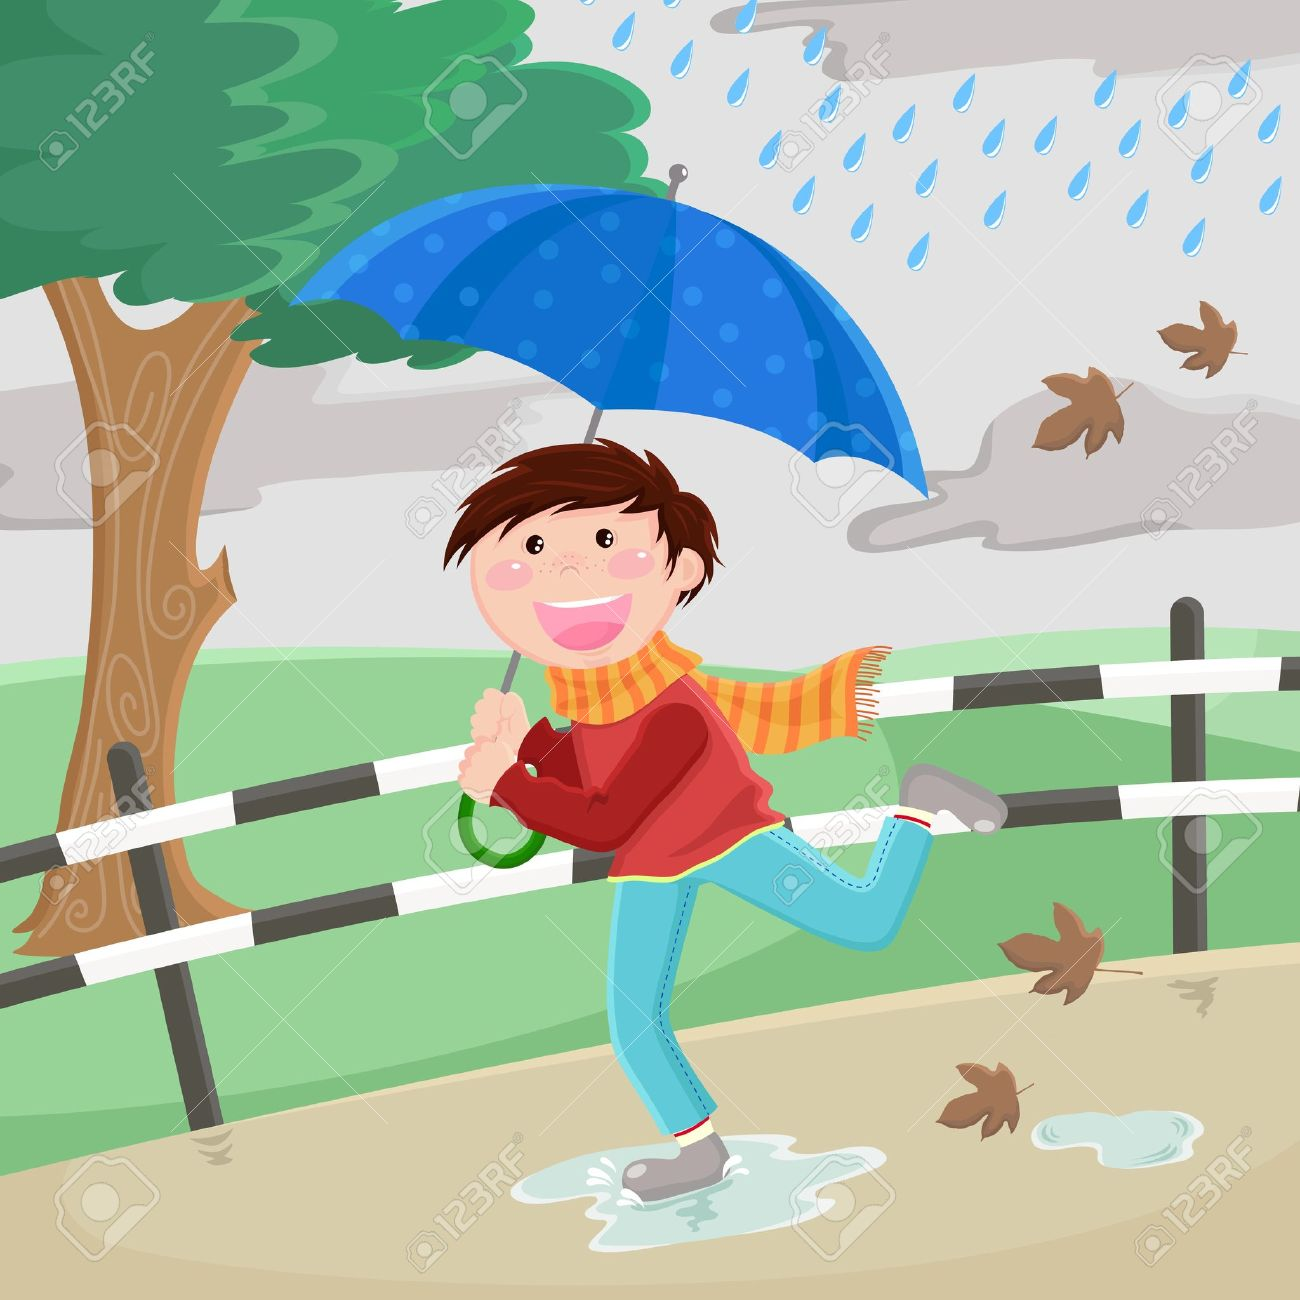 Boy With Umbrella Running Happily In The Rain Royalty Free.